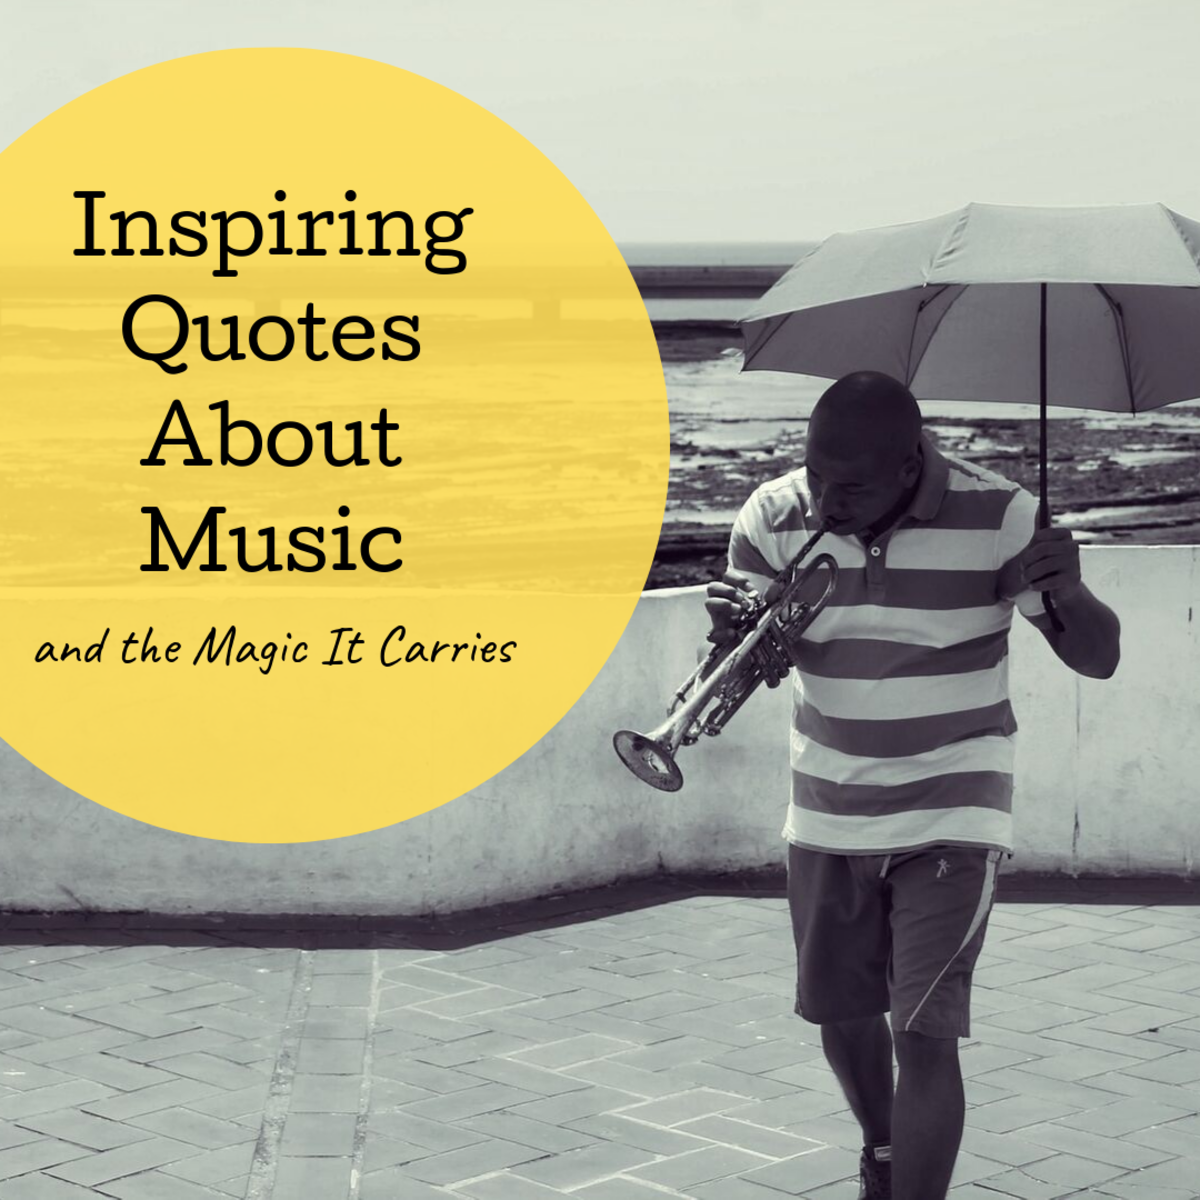 Inspirational Quotes About the Magic of Music